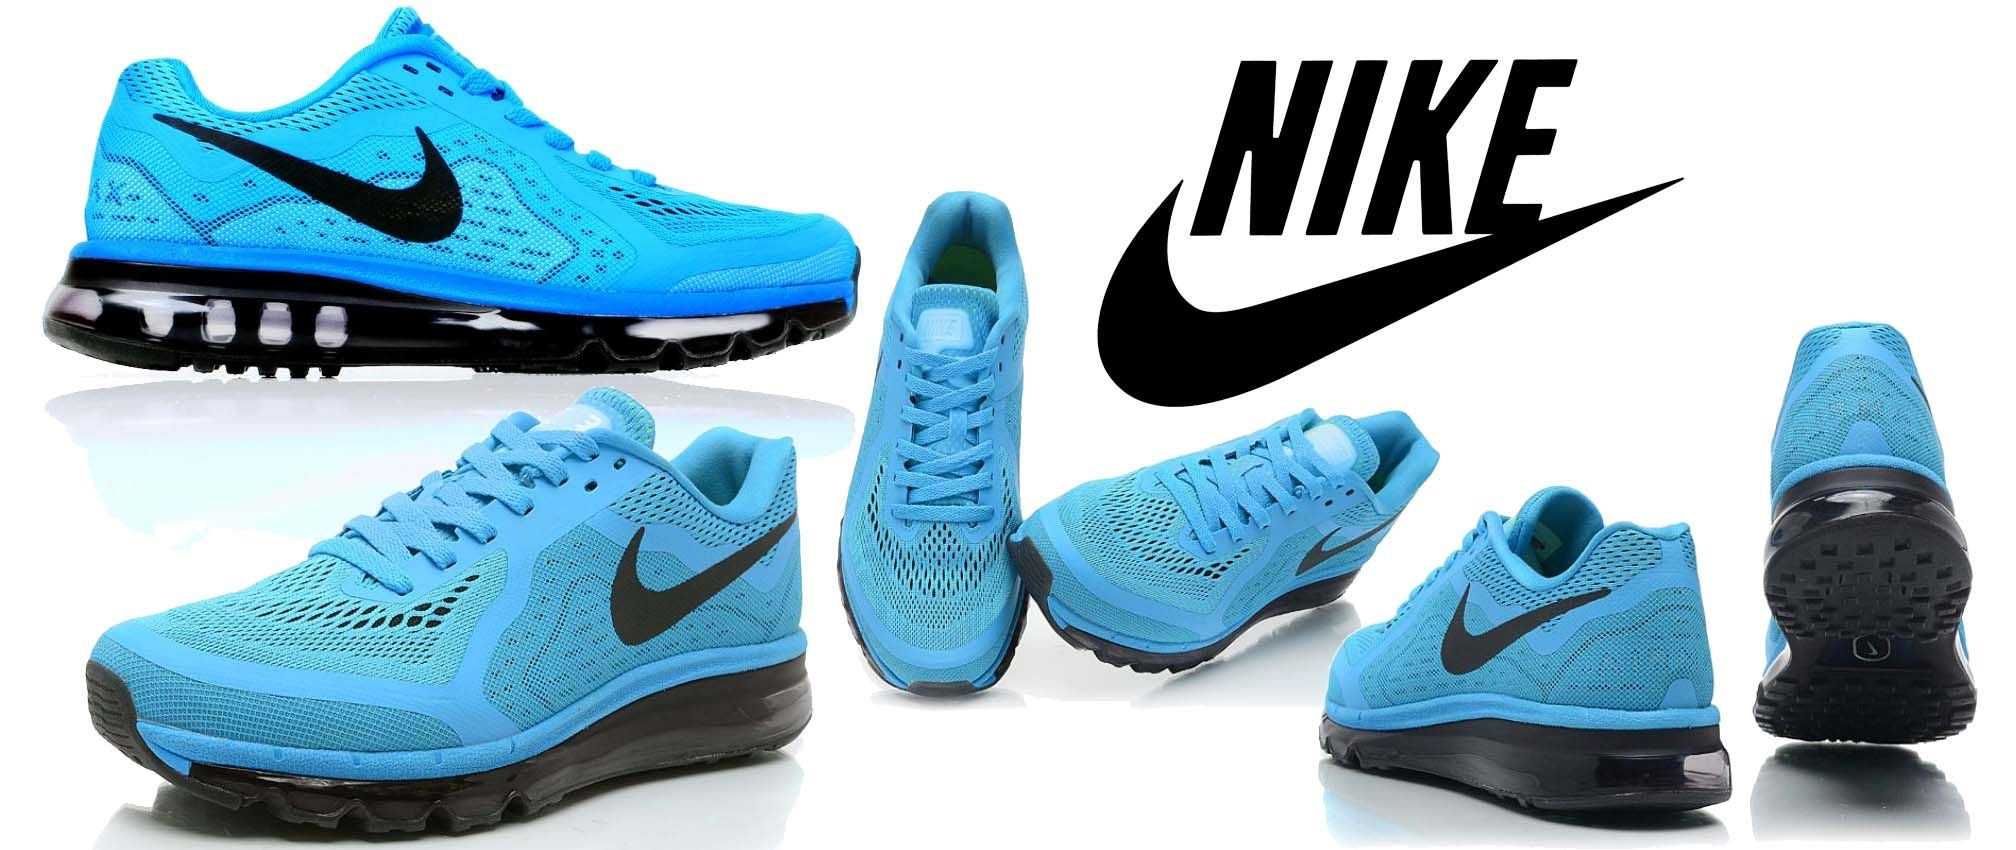 air max shoes price in pakistan